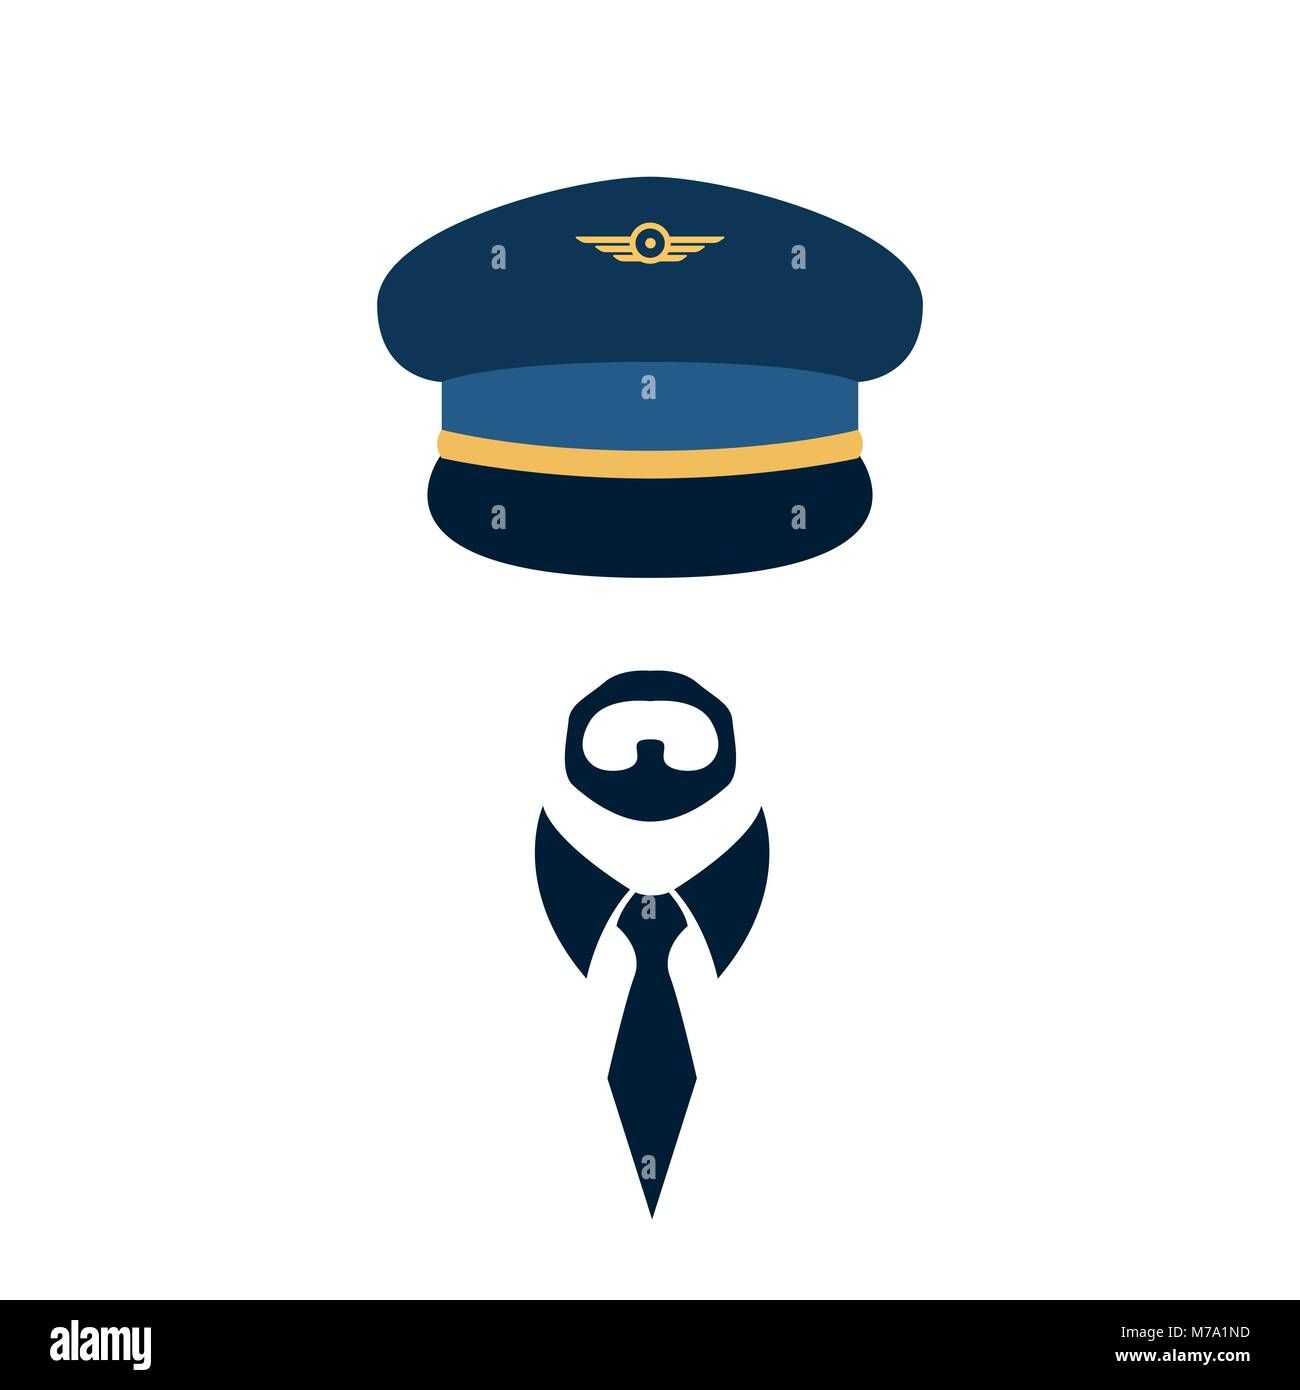 Portrait De Pilote Dans Un Chapeau Et Cravate Vector Illustration